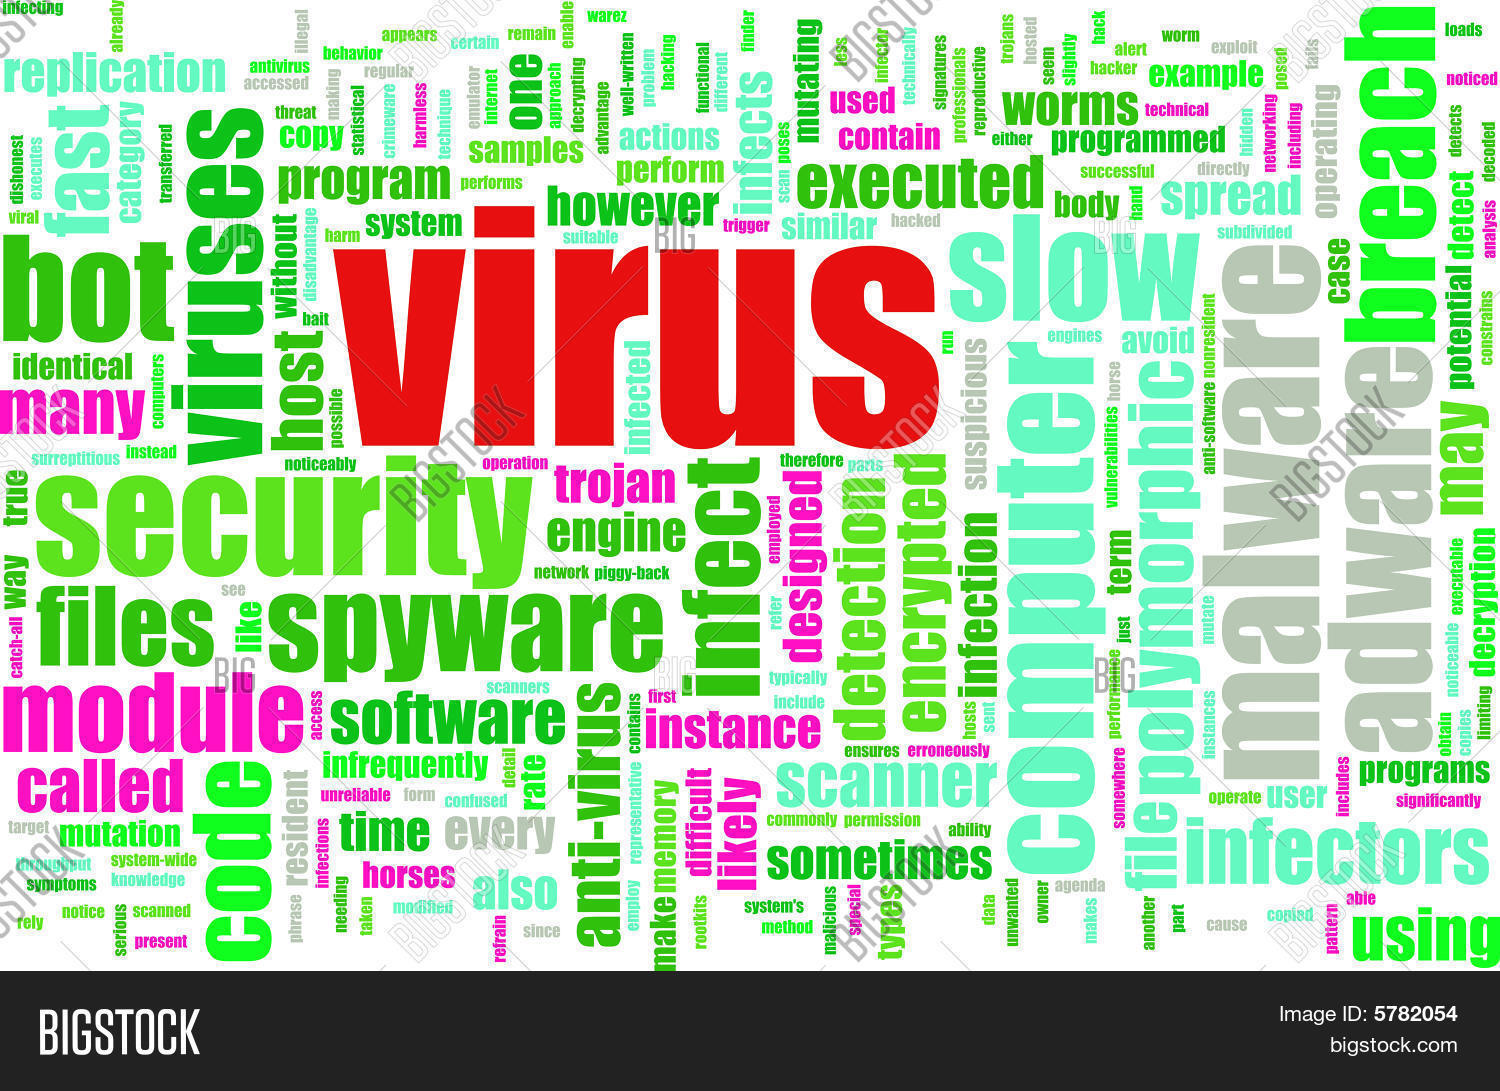 abstract,adware,alert,anti-virus,antivirus,background,blue,bot,breach,business,code,computer,danger,detection,digital,executable,file,green,headline,infected,module,network,network security,pc,polymorphic,program,red,risk,security,software,spyware,suspicious,technology,trojan,virus,viruses,warning,worm